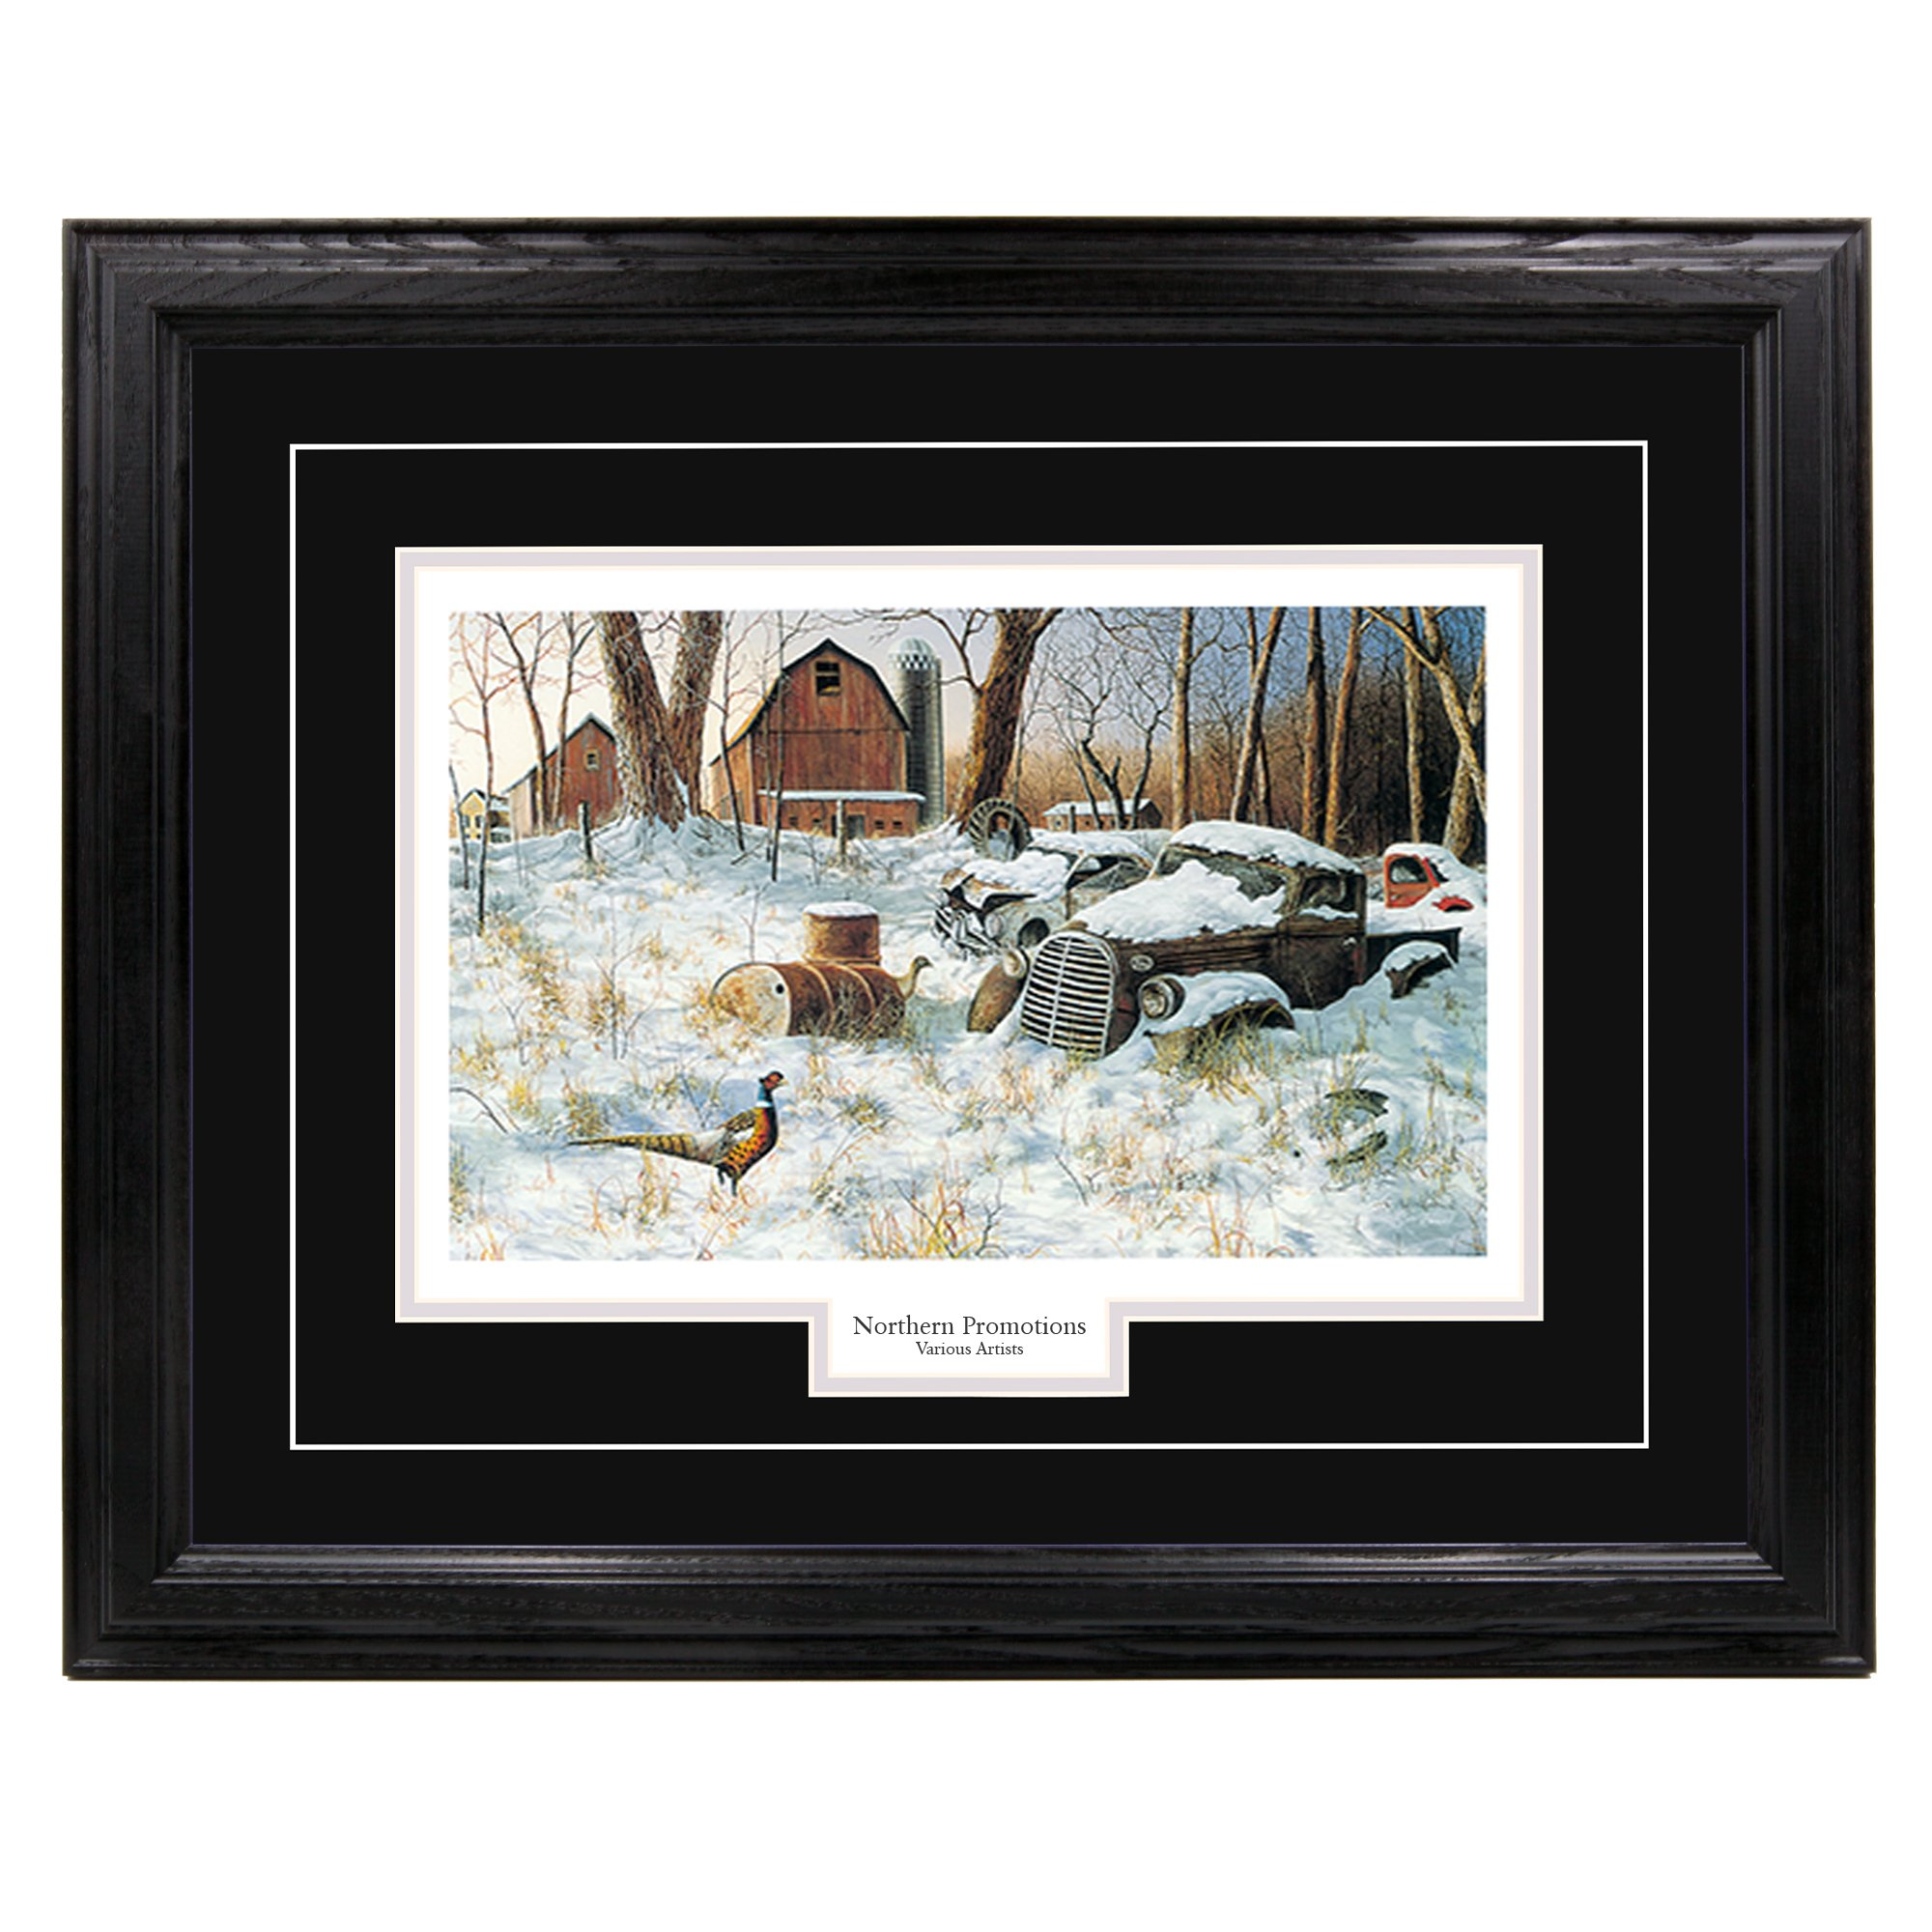 ''Winter Haven'' - Jim Hansel, Pheasants in Winter Wall Art Print for Home / Office / Hotel / Cabin / Gift, Framed 30 x 40 in., Black Mat / Black Frame – More Frames Available